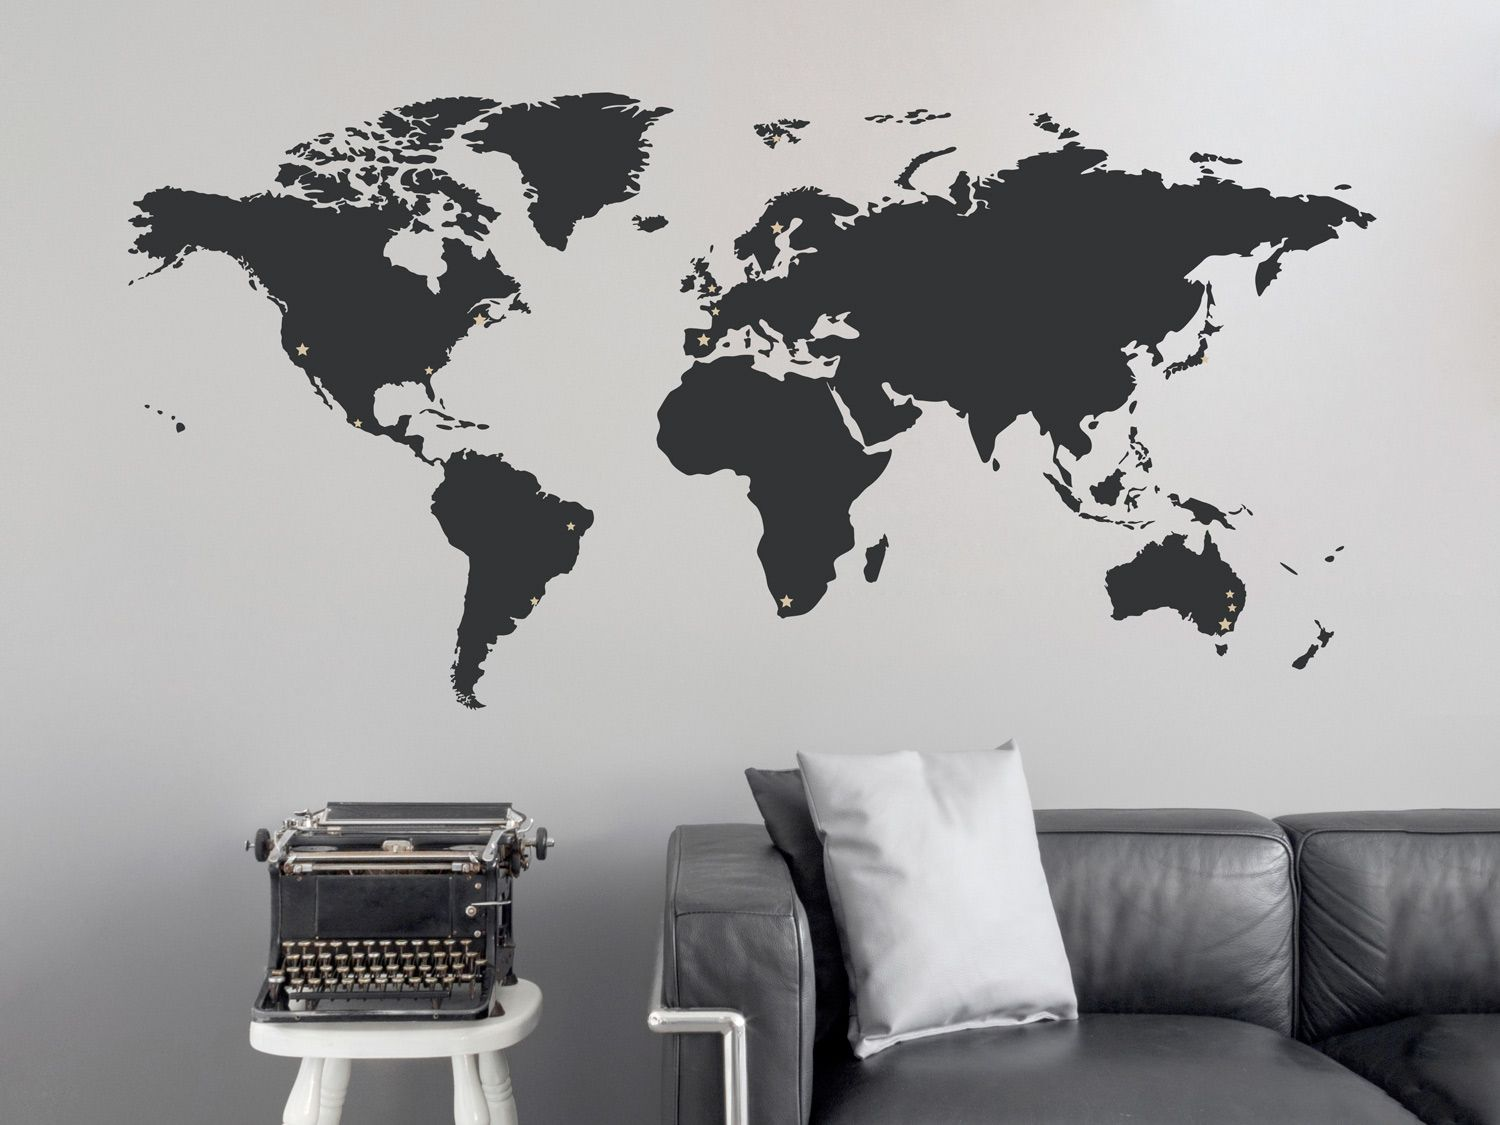 Peel And Stick World Map Wall Mural World Map Wall Decal Map Wall Decal Wall Decals #wall #art #decals #for #living #room